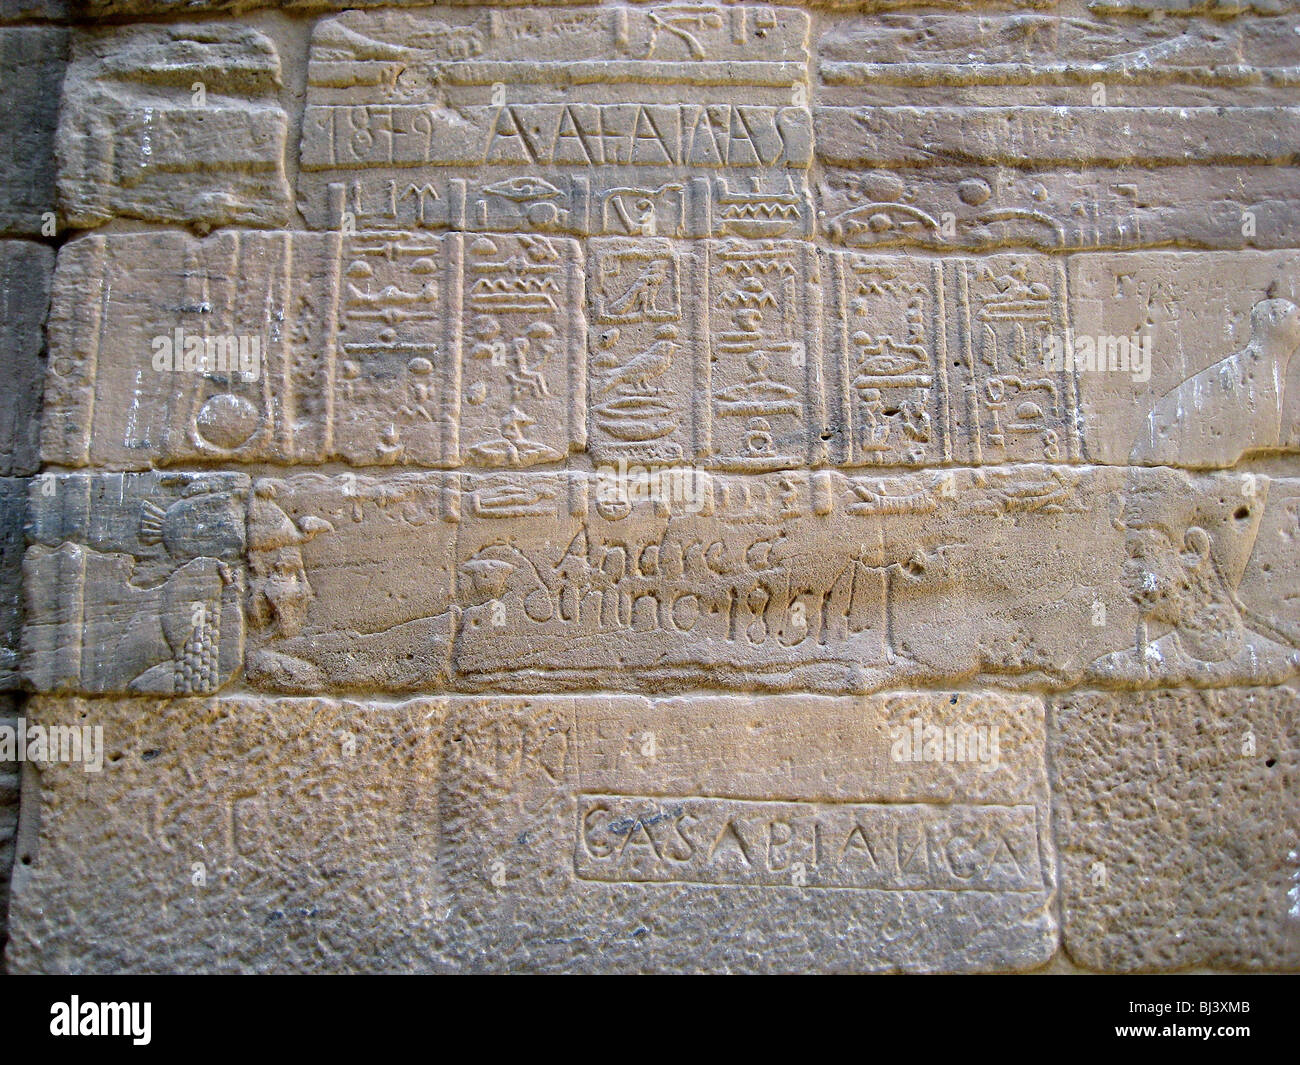 Hieroglyphic inscription on a wall of the Temple of Isis, defaced by graffiti, Philae, Egypt. Artist: Werner Forman - Stock Image